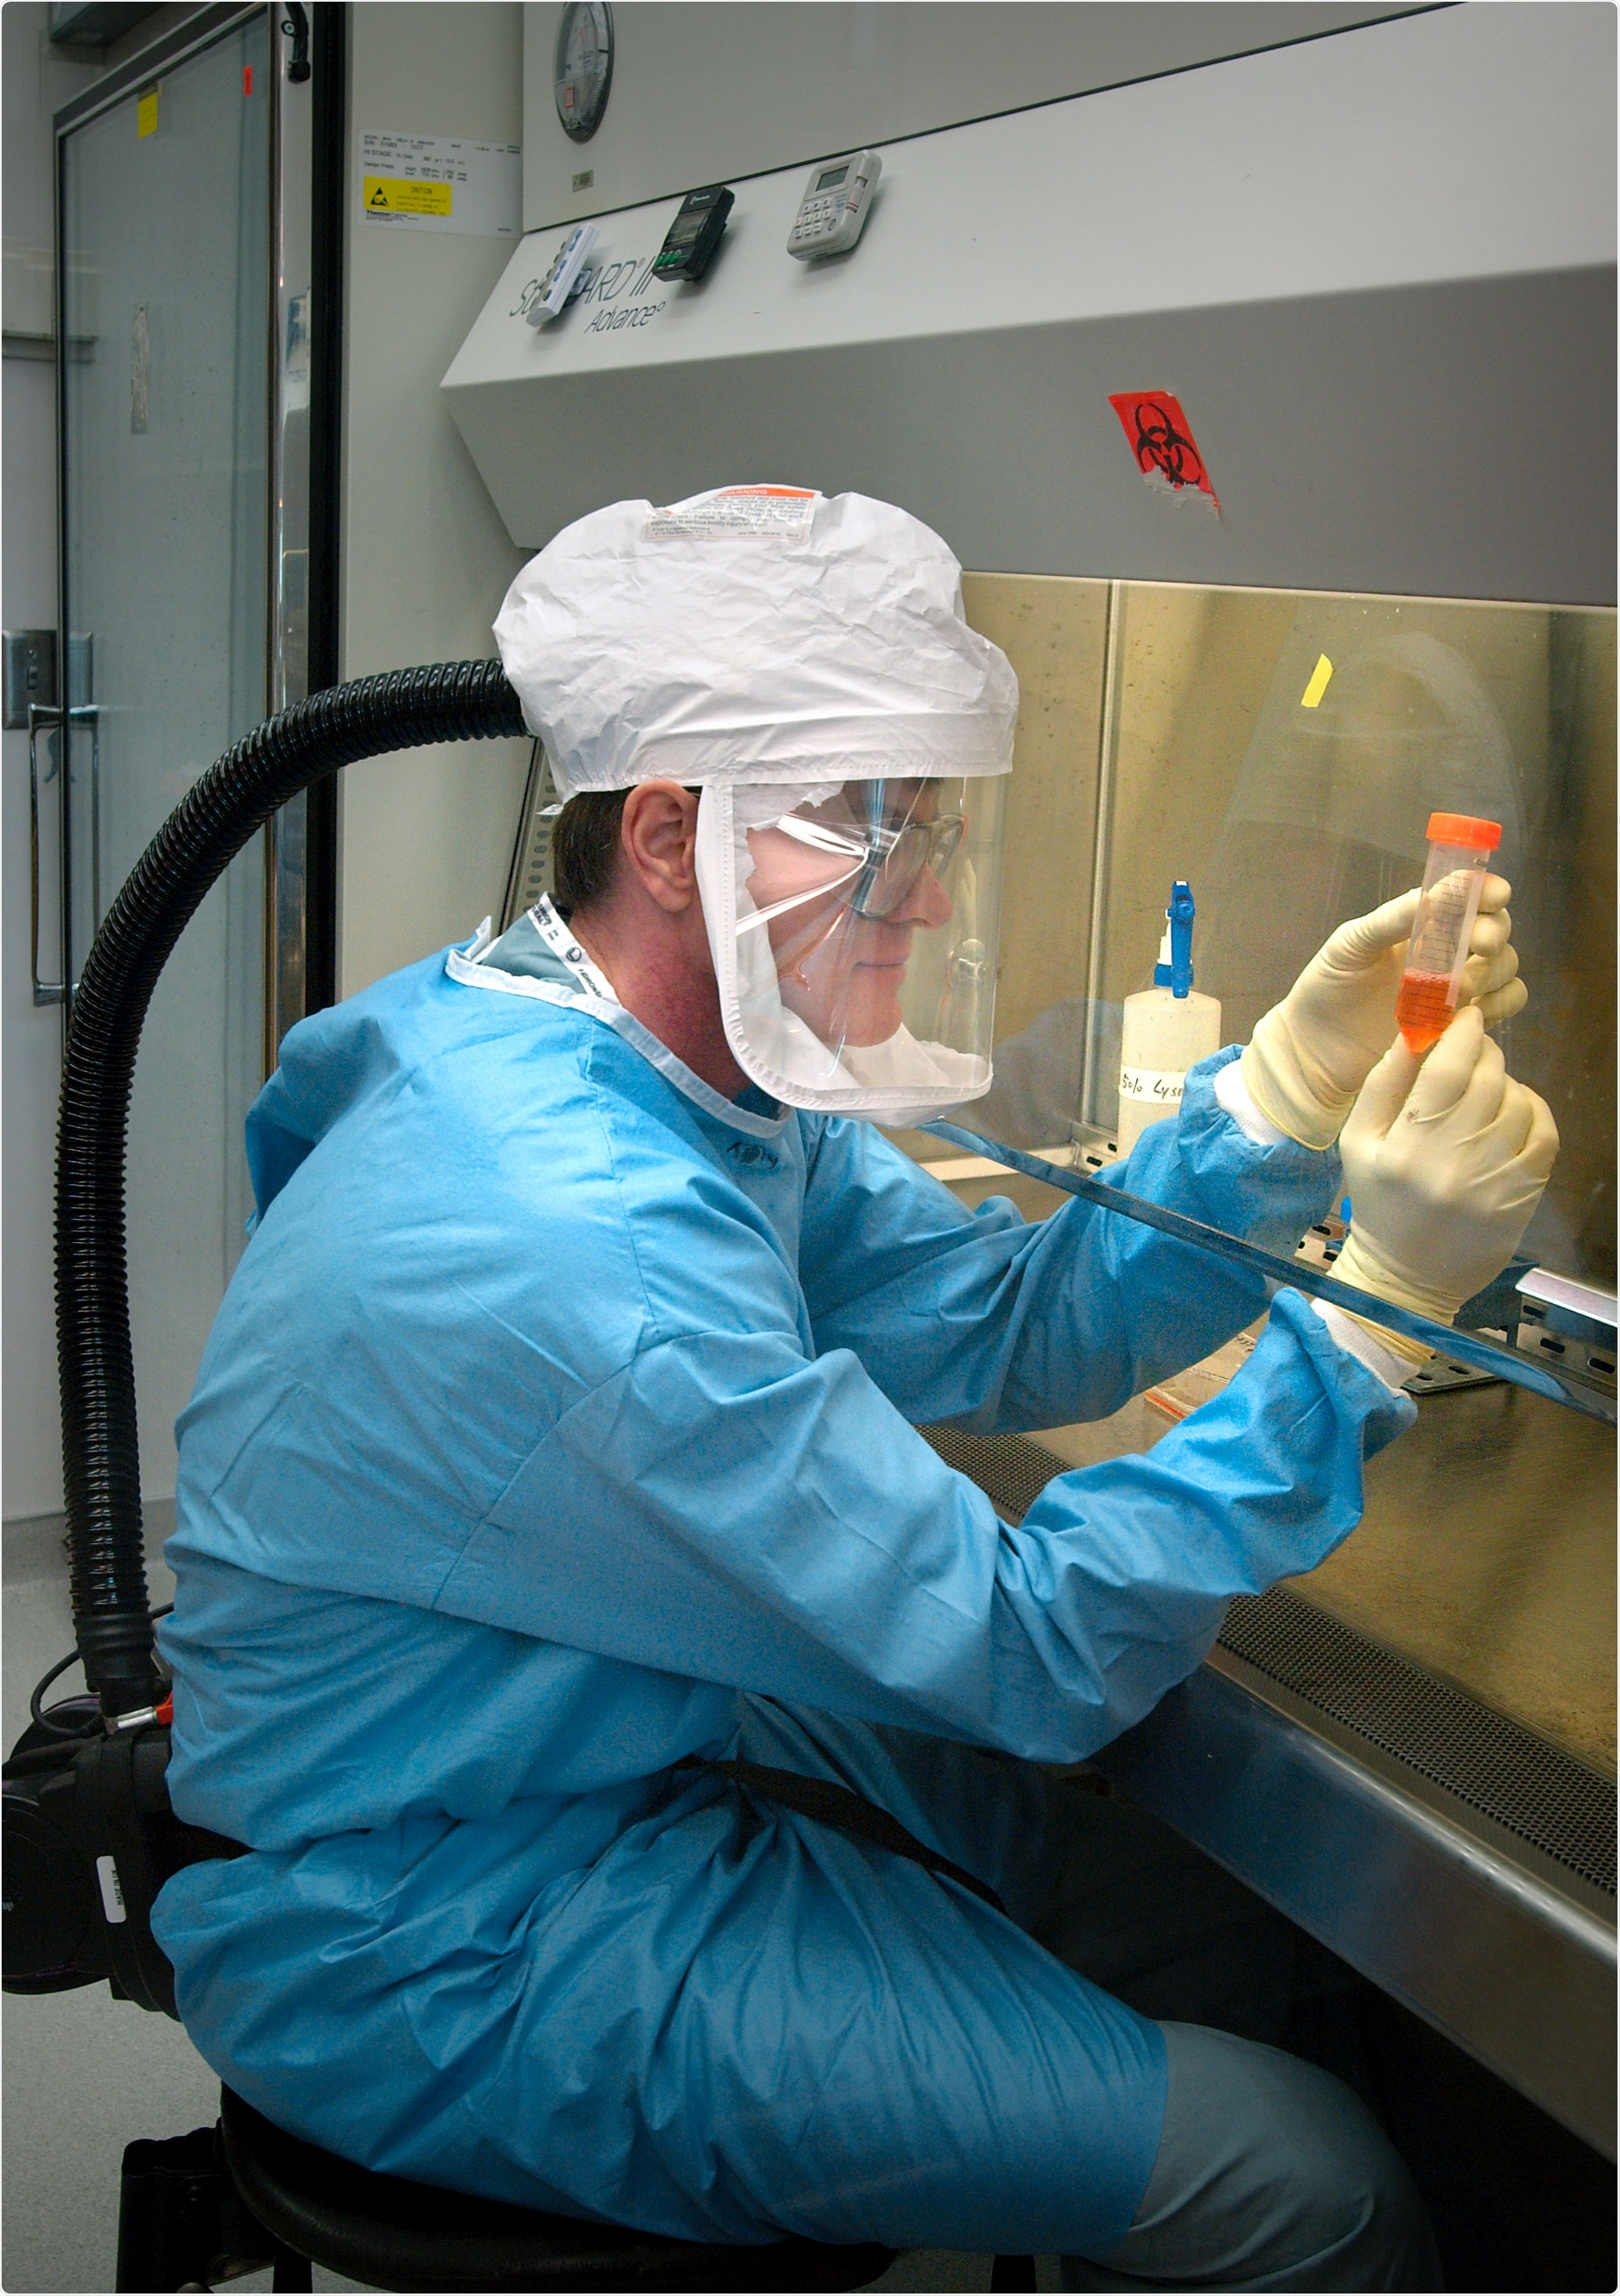 Researcher at US Centers for Disease Control, Atlanta, Georgia, working with influenza virus under biosafety level 3 conditions, with respirator inside a biosafety cabinet (BSC). Photo Credit: James Gathany Content Providers(s): CDC